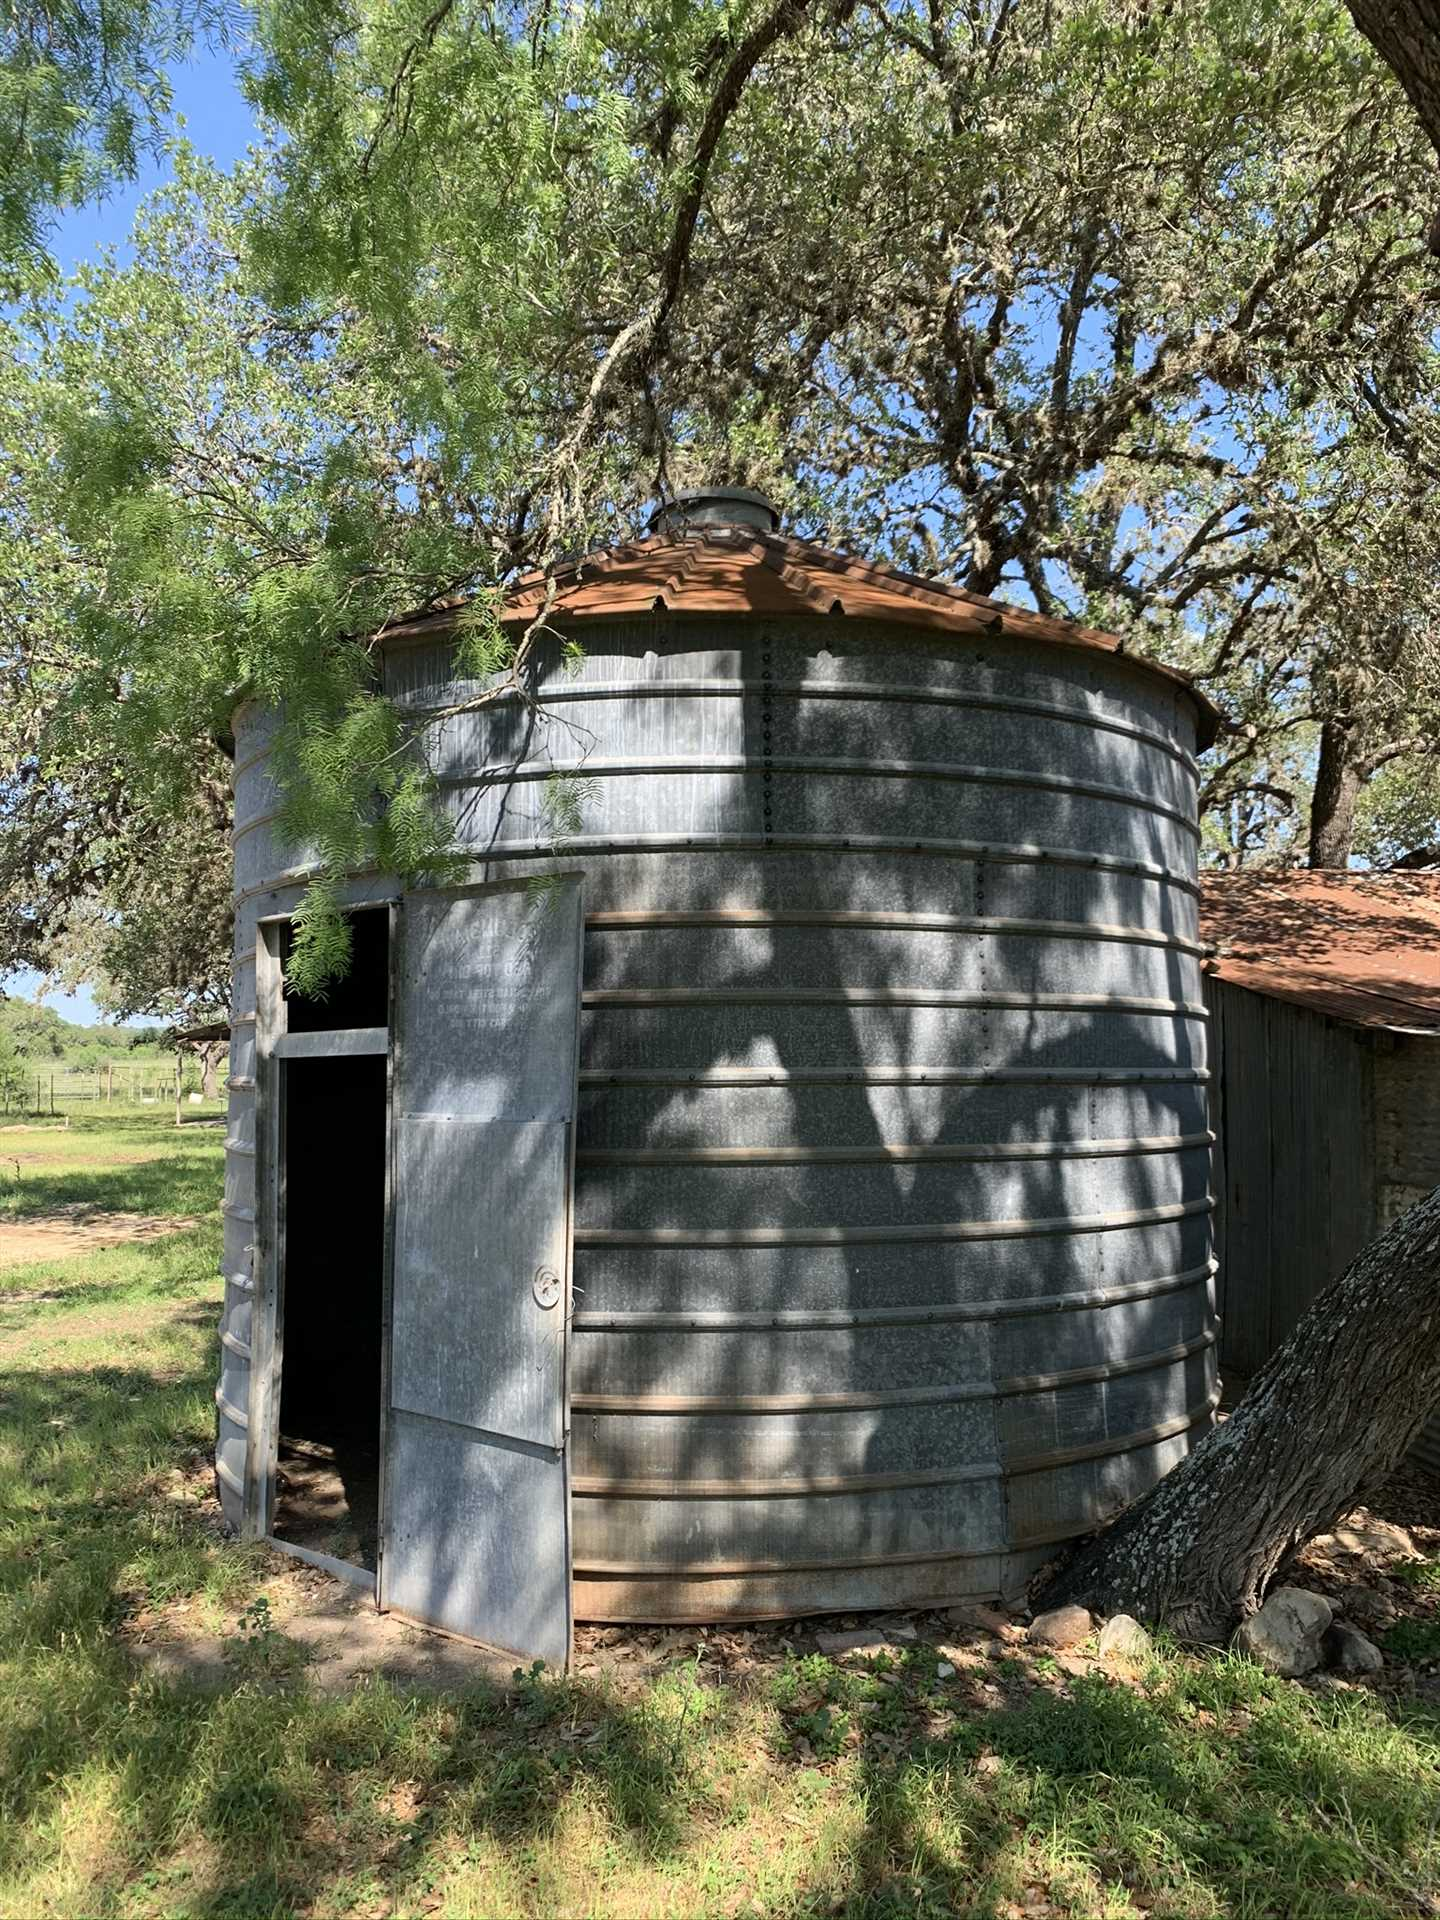 This place has something for everyone: country charm, tons of space and wildlife, and reminders of Hill Country history.